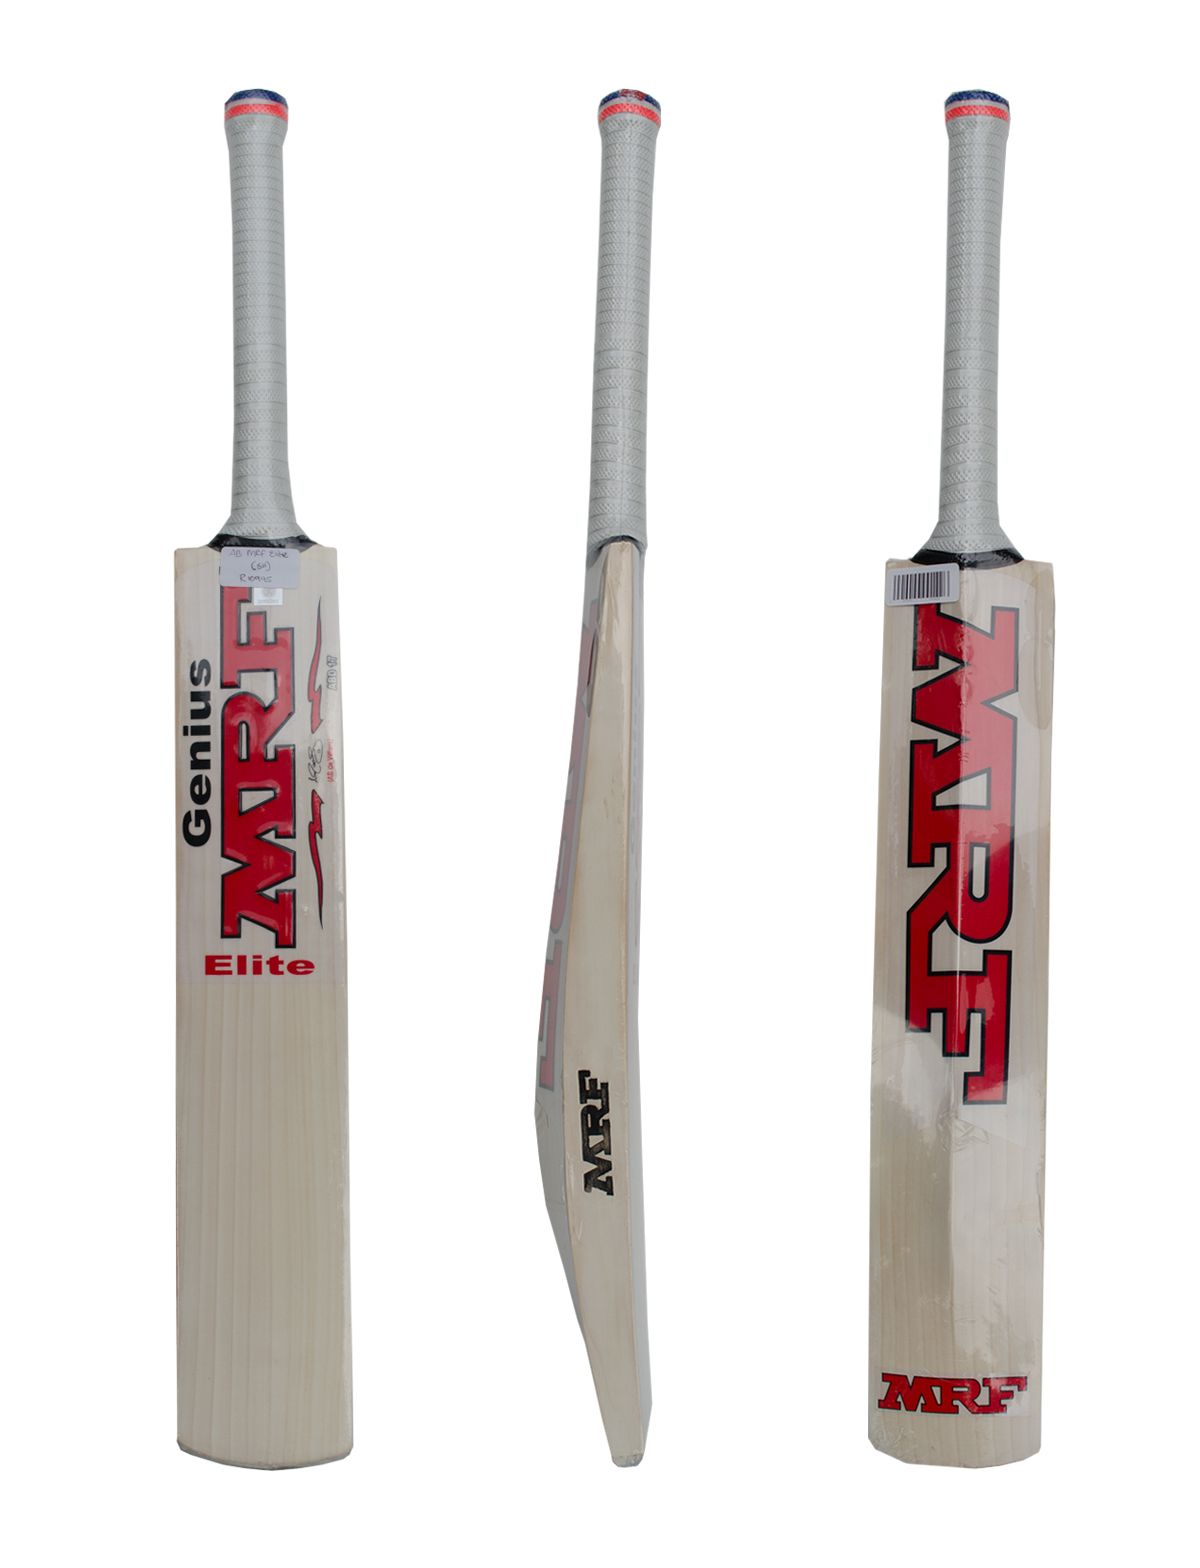 4b2f5a7ea0d MRF AB De Villiers Elite. Find this Pin and more on COOL CRICKET BATS ...